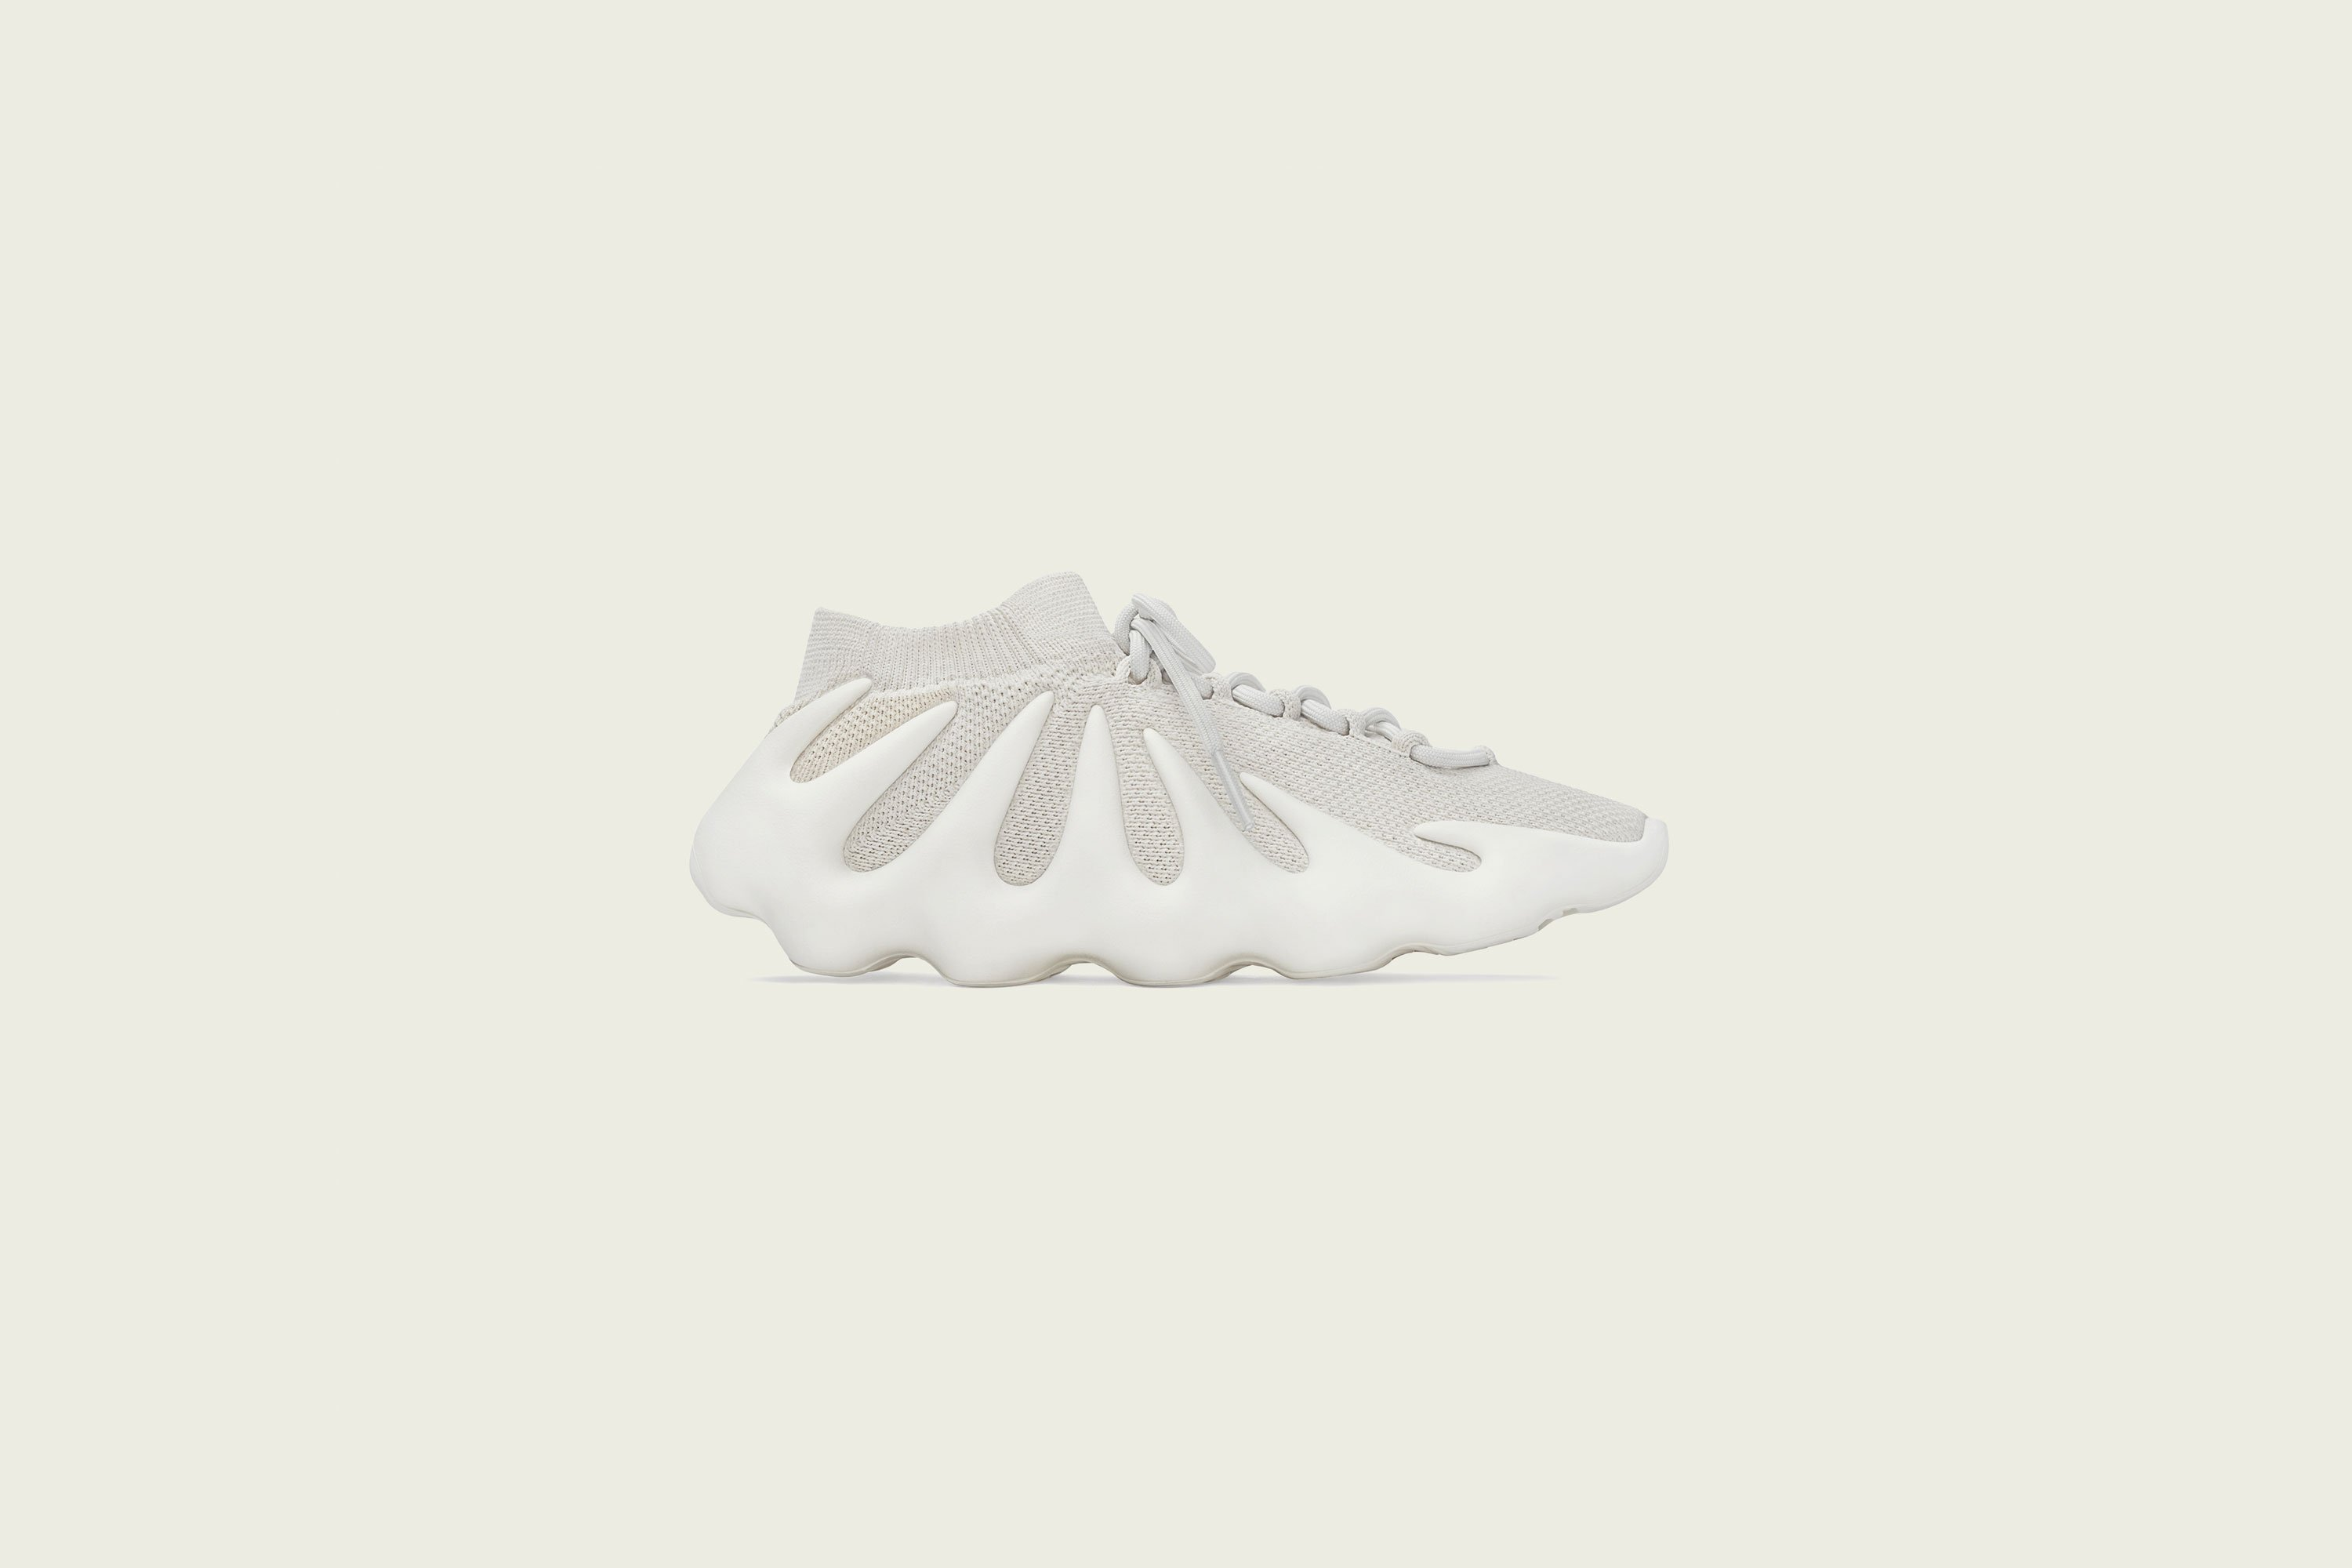 Up There Launches - adidas Originals Yeezy 450 'Cloud White'